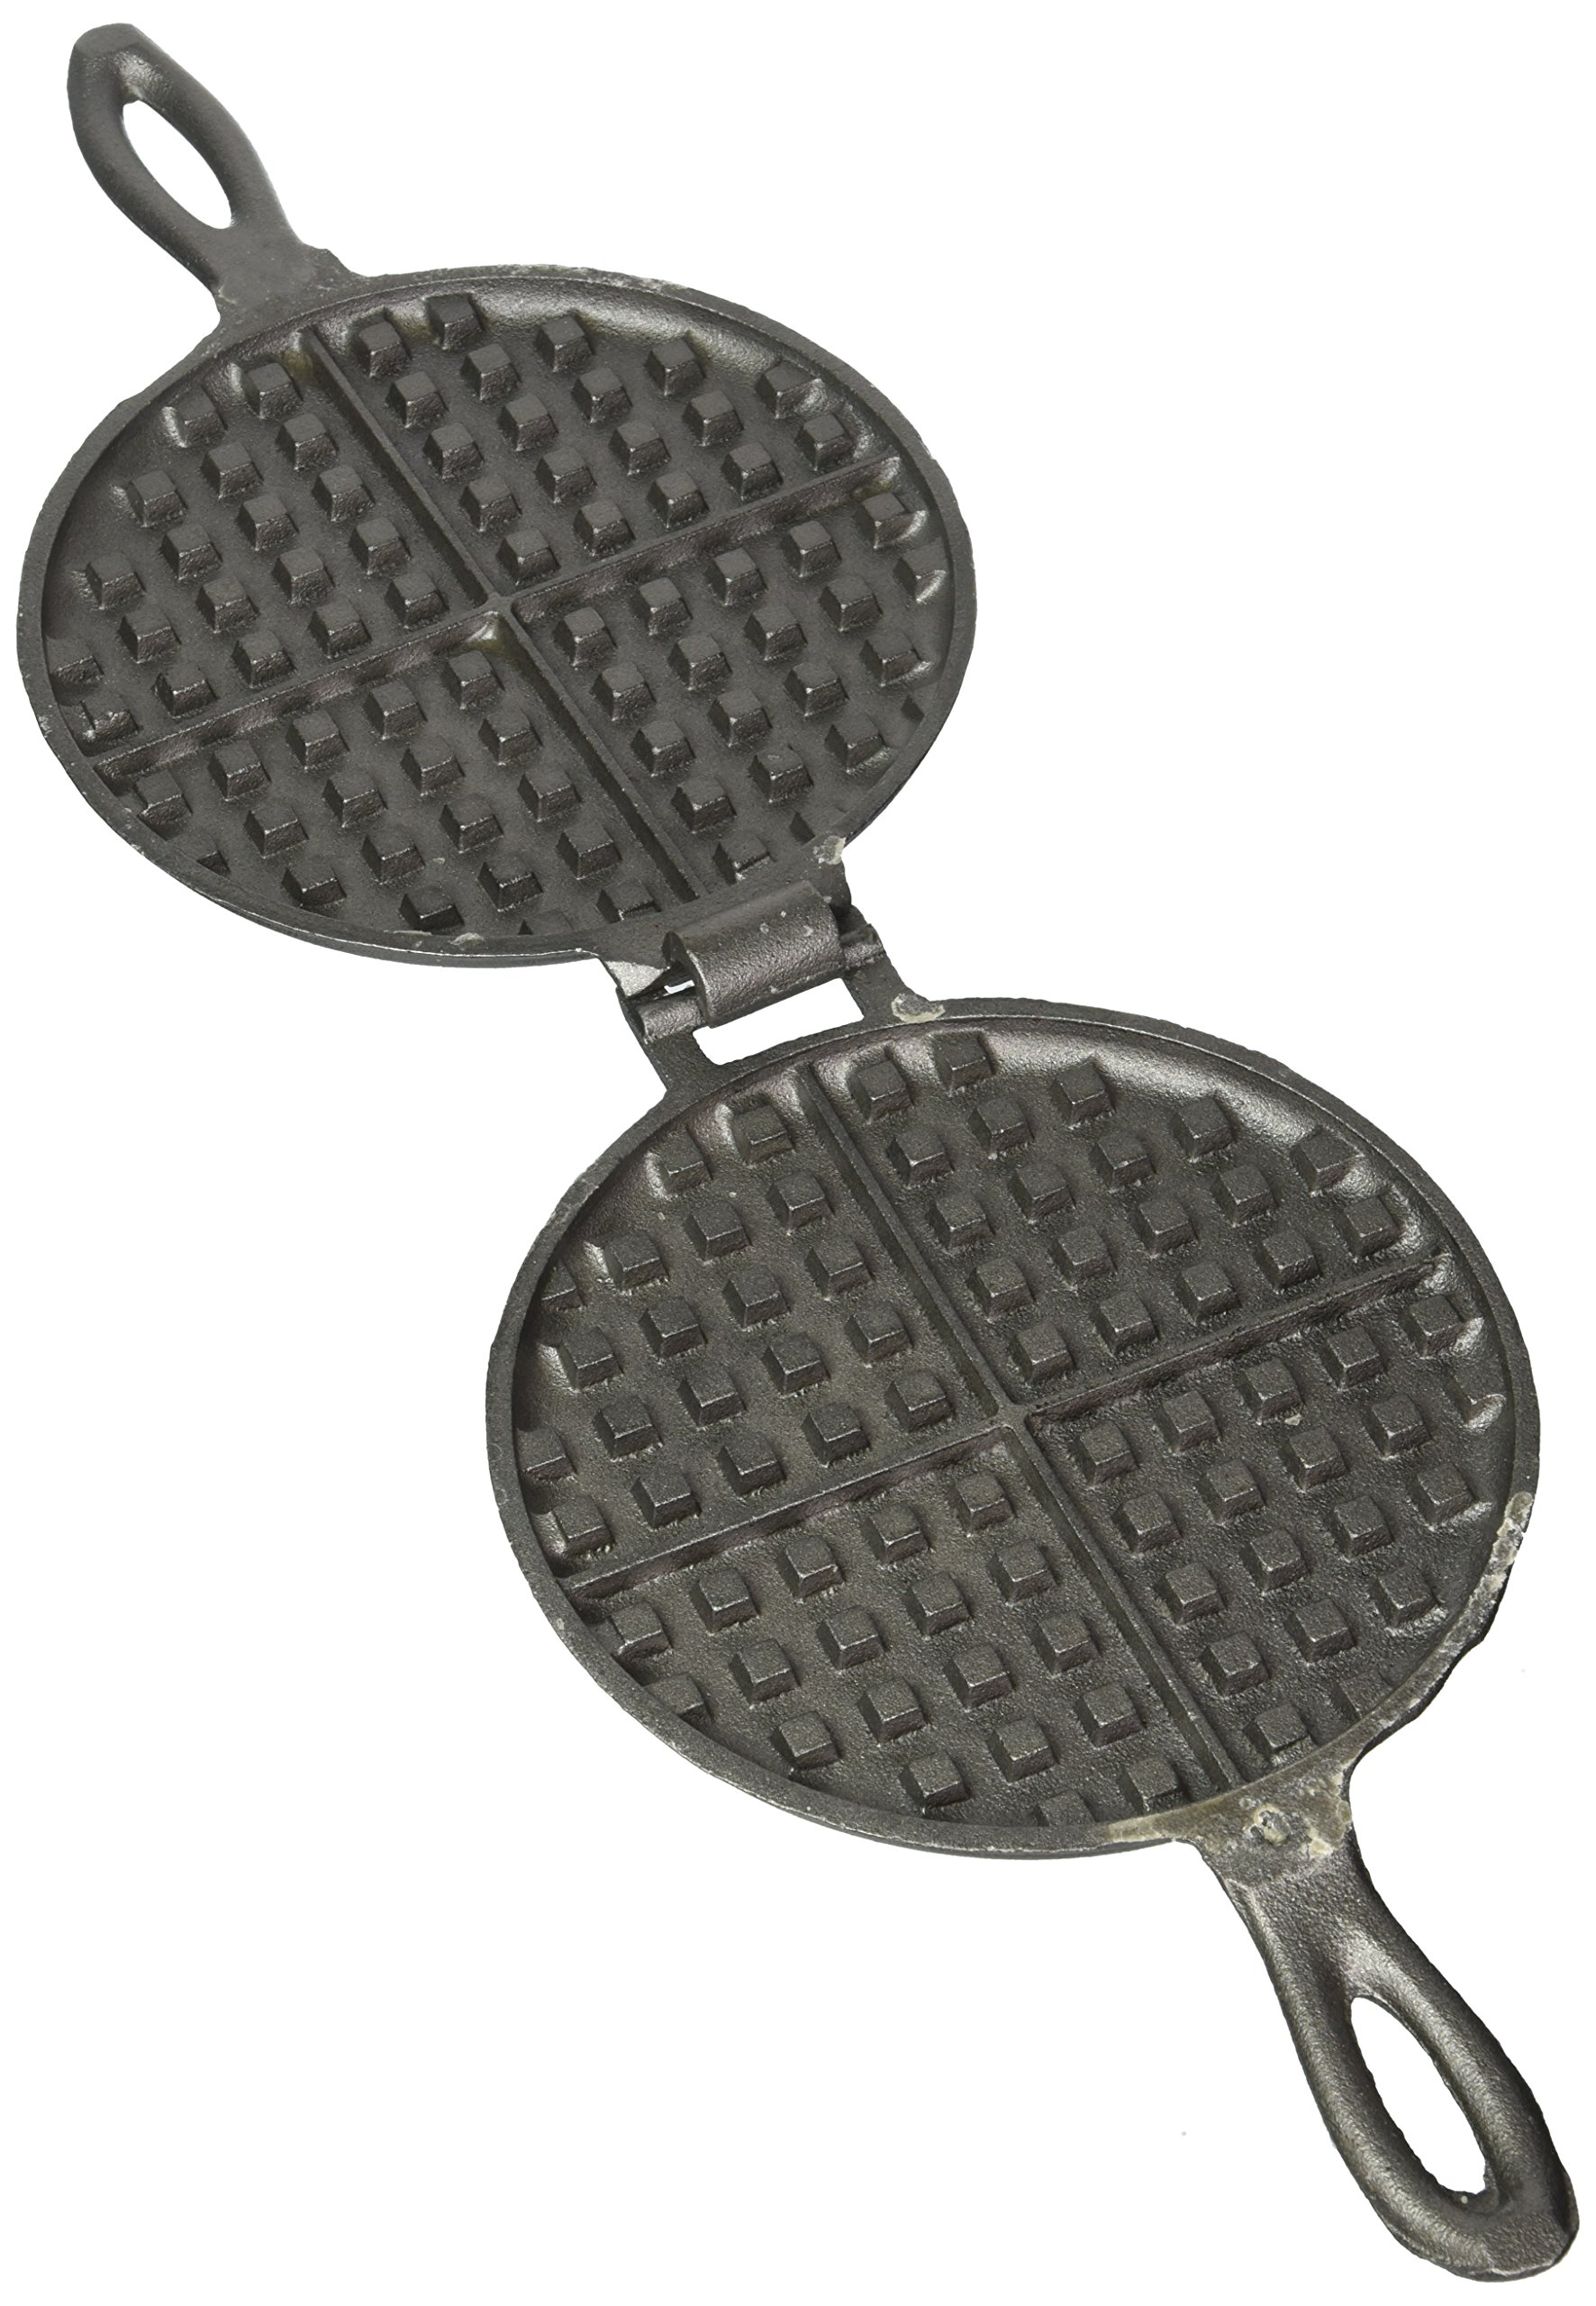 Solid Cast Iron Old Fashioned Waffle Iron by Rome's Original by Rome's Original (Image #2)